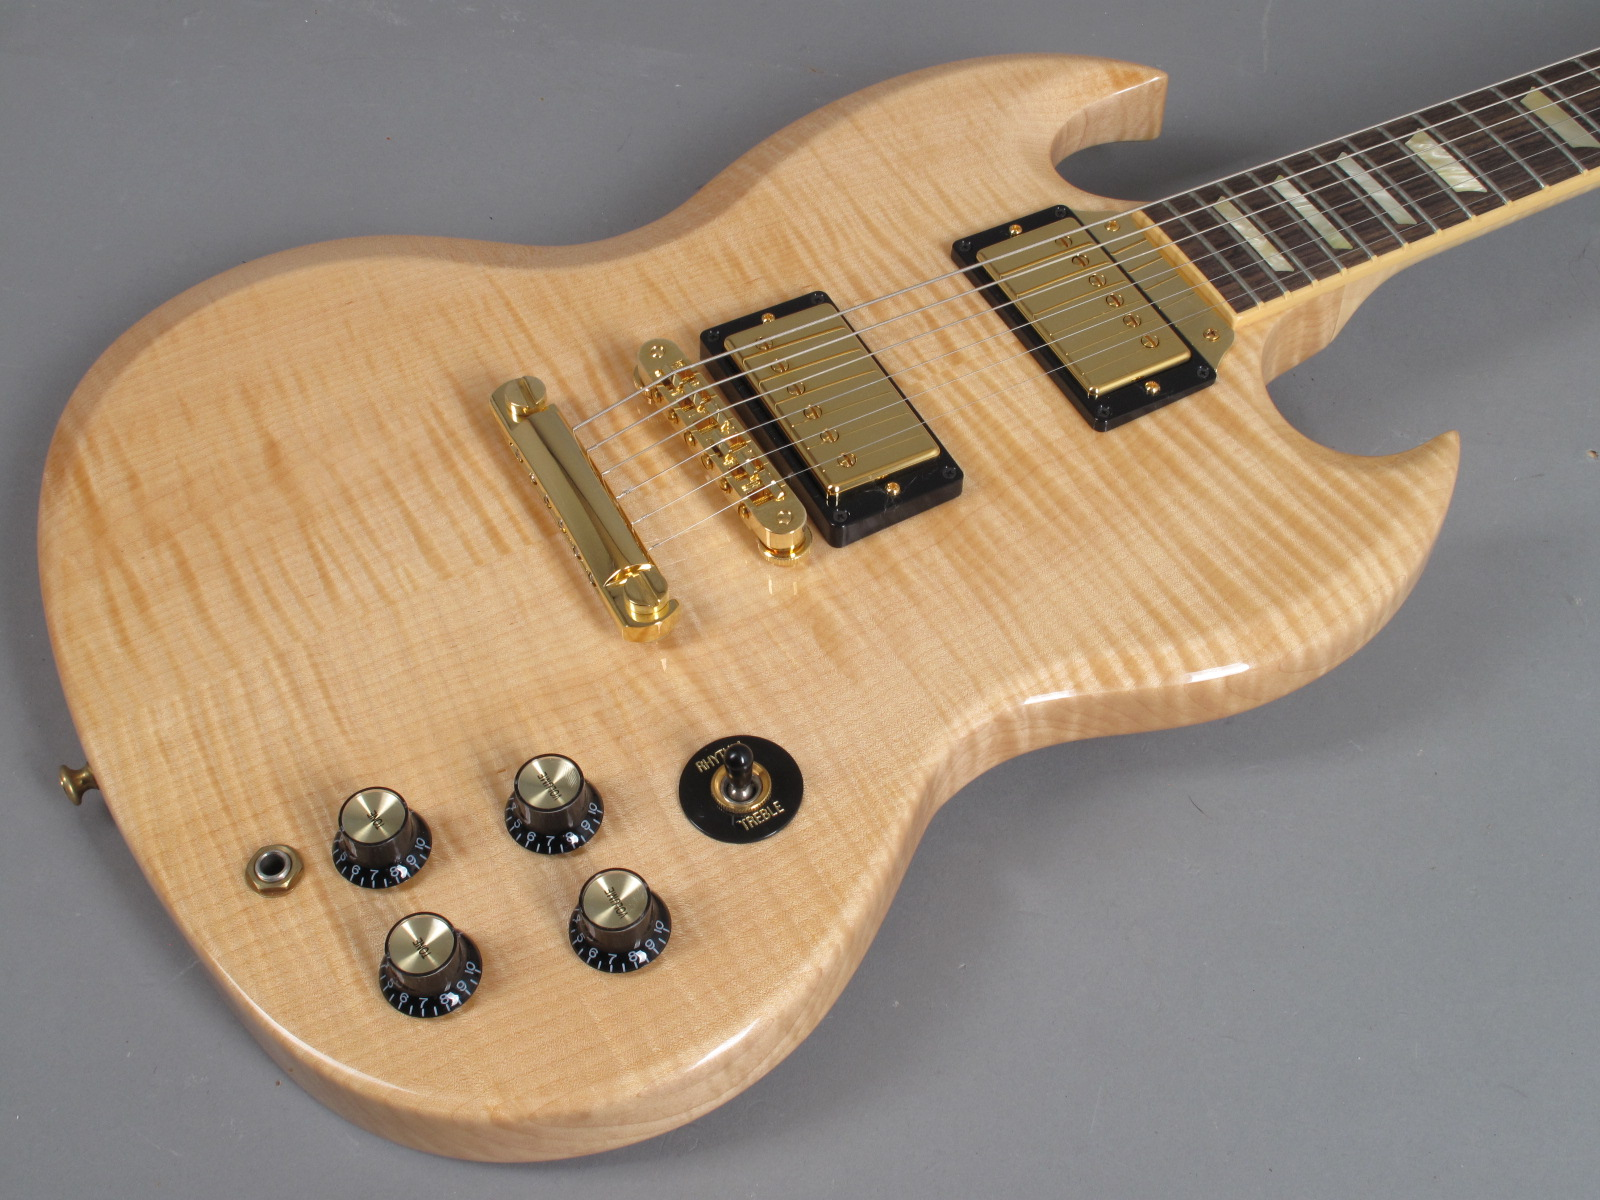 https://guitarpoint.de/app/uploads/products/2007-gibson-sg-select-natural/Gibson-SG-Select-Natural-022870341-8.jpg